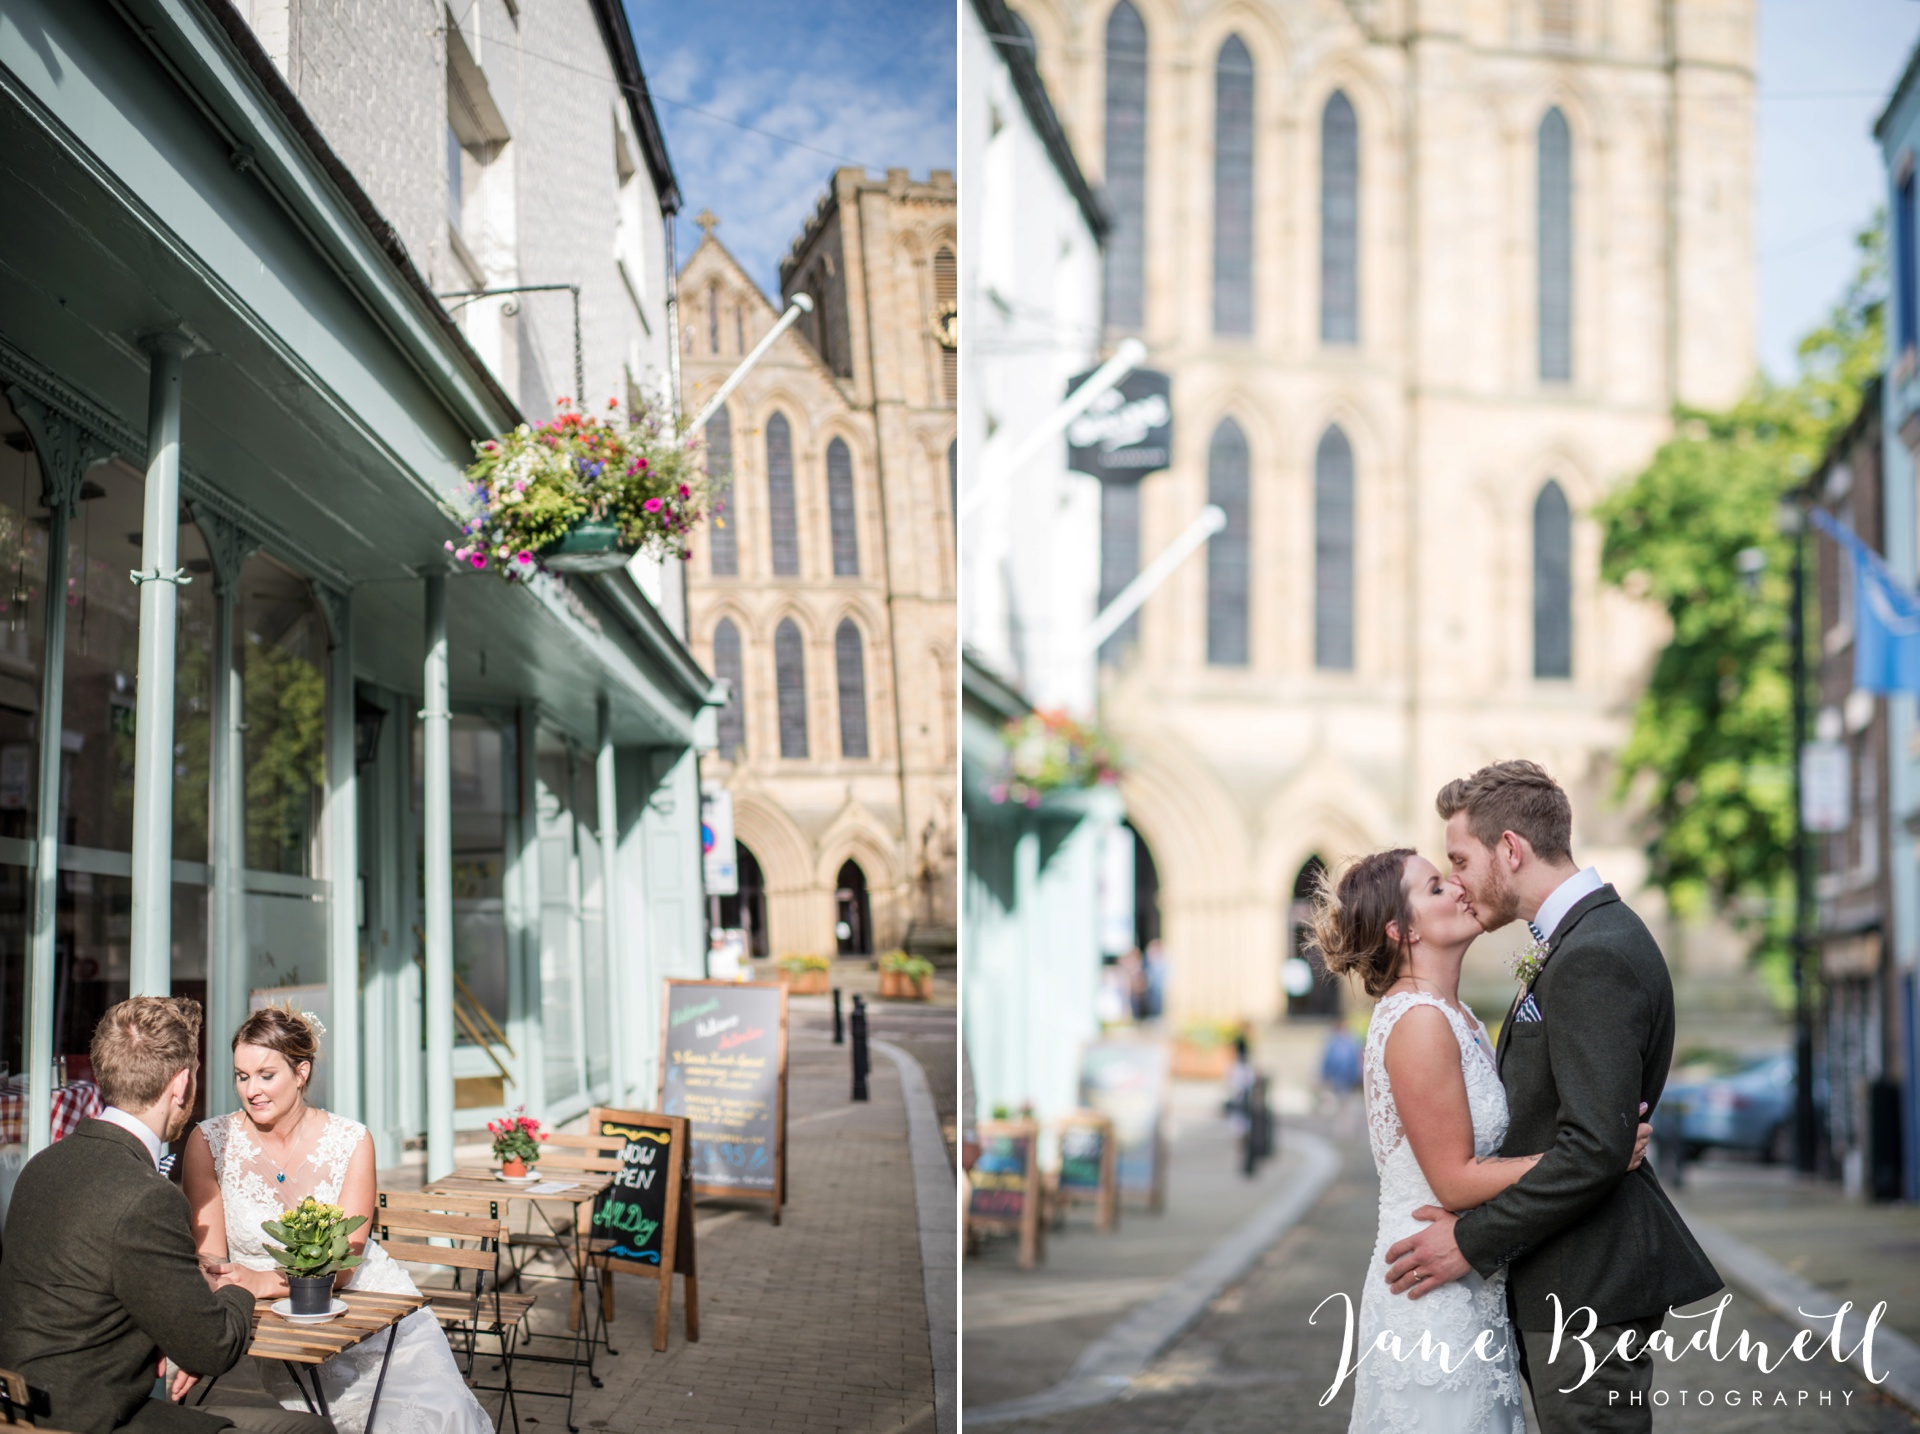 Jane Beadnell fine art wedding photographer The Old Deanery Ripon_0072